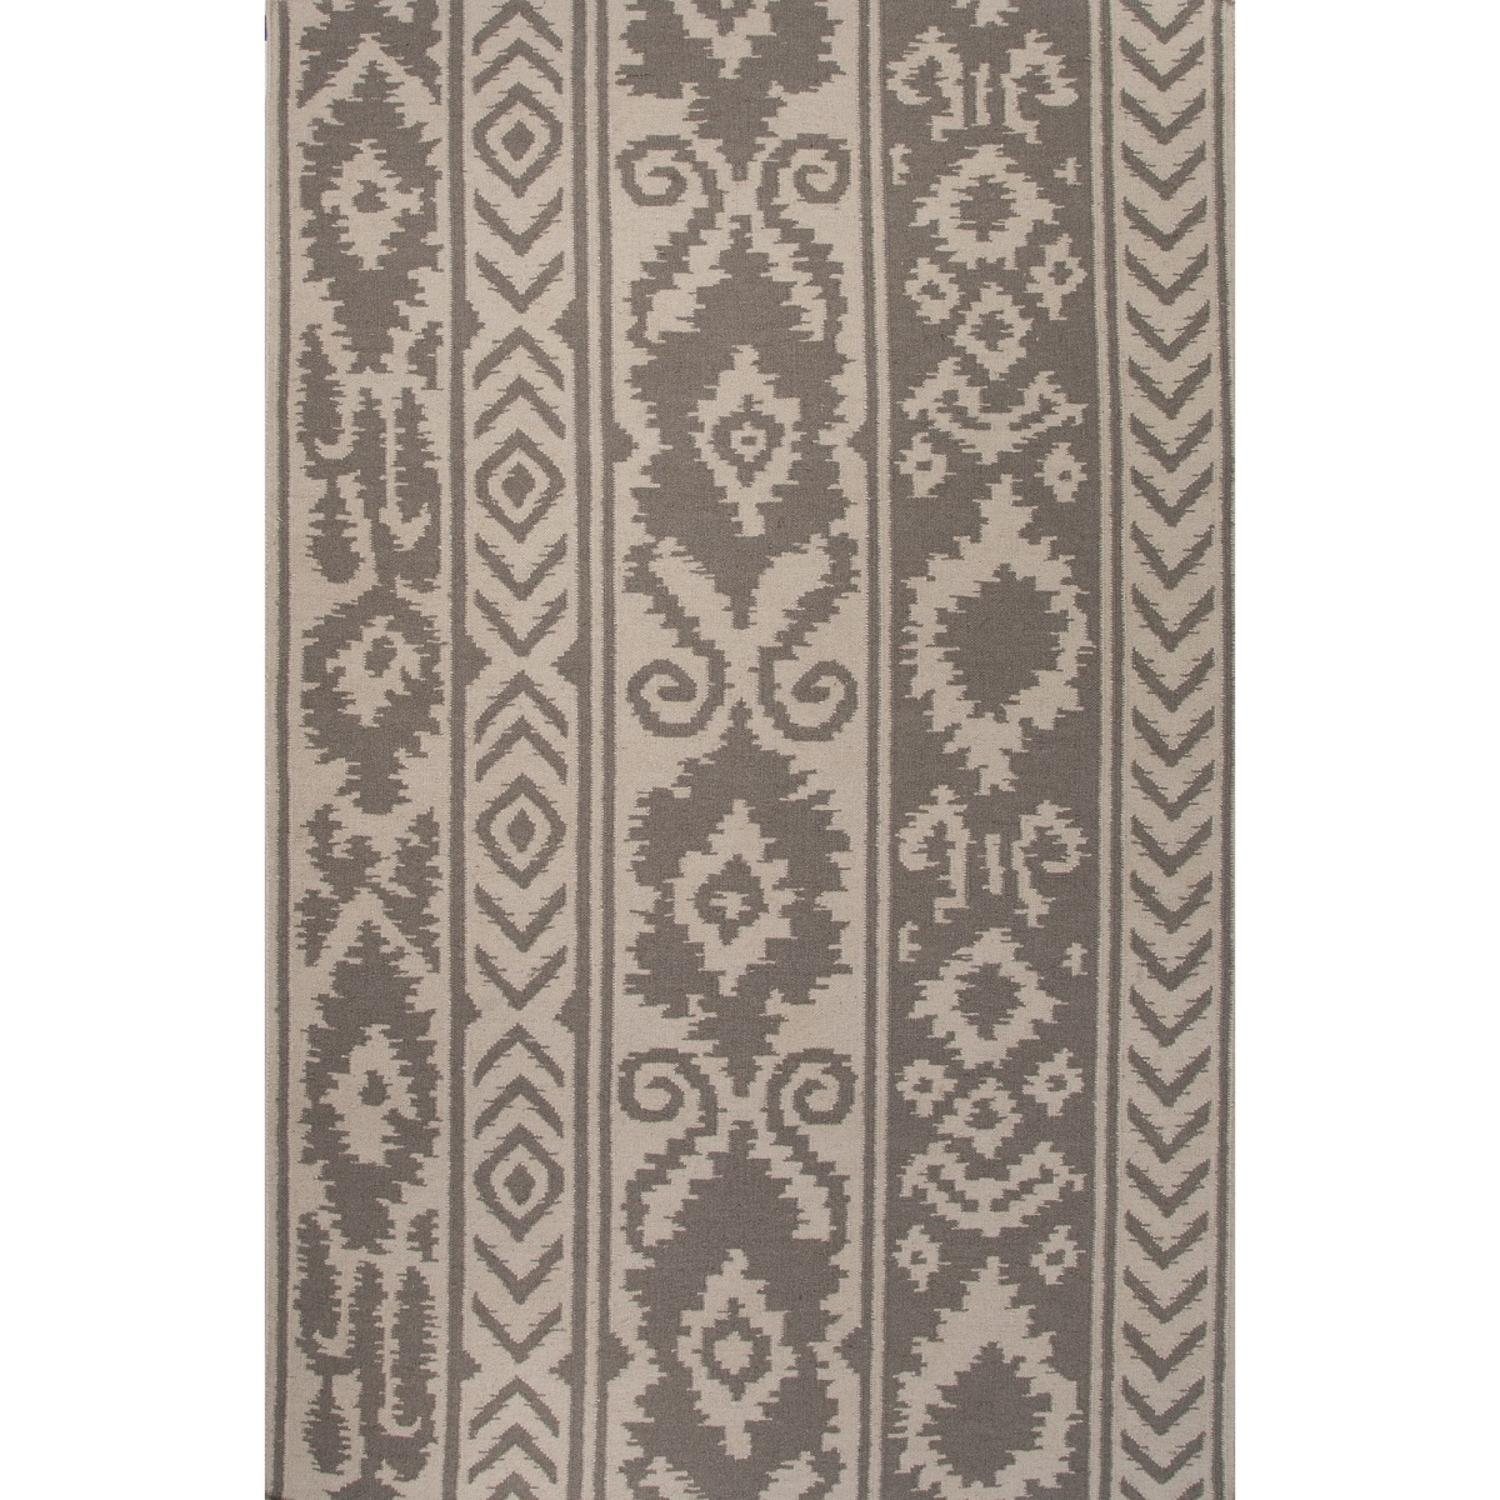 8' x 10' Taupe and Beige Tribal Farid Flat Weave Hand Woven Reversible Wool Area Throw Rug